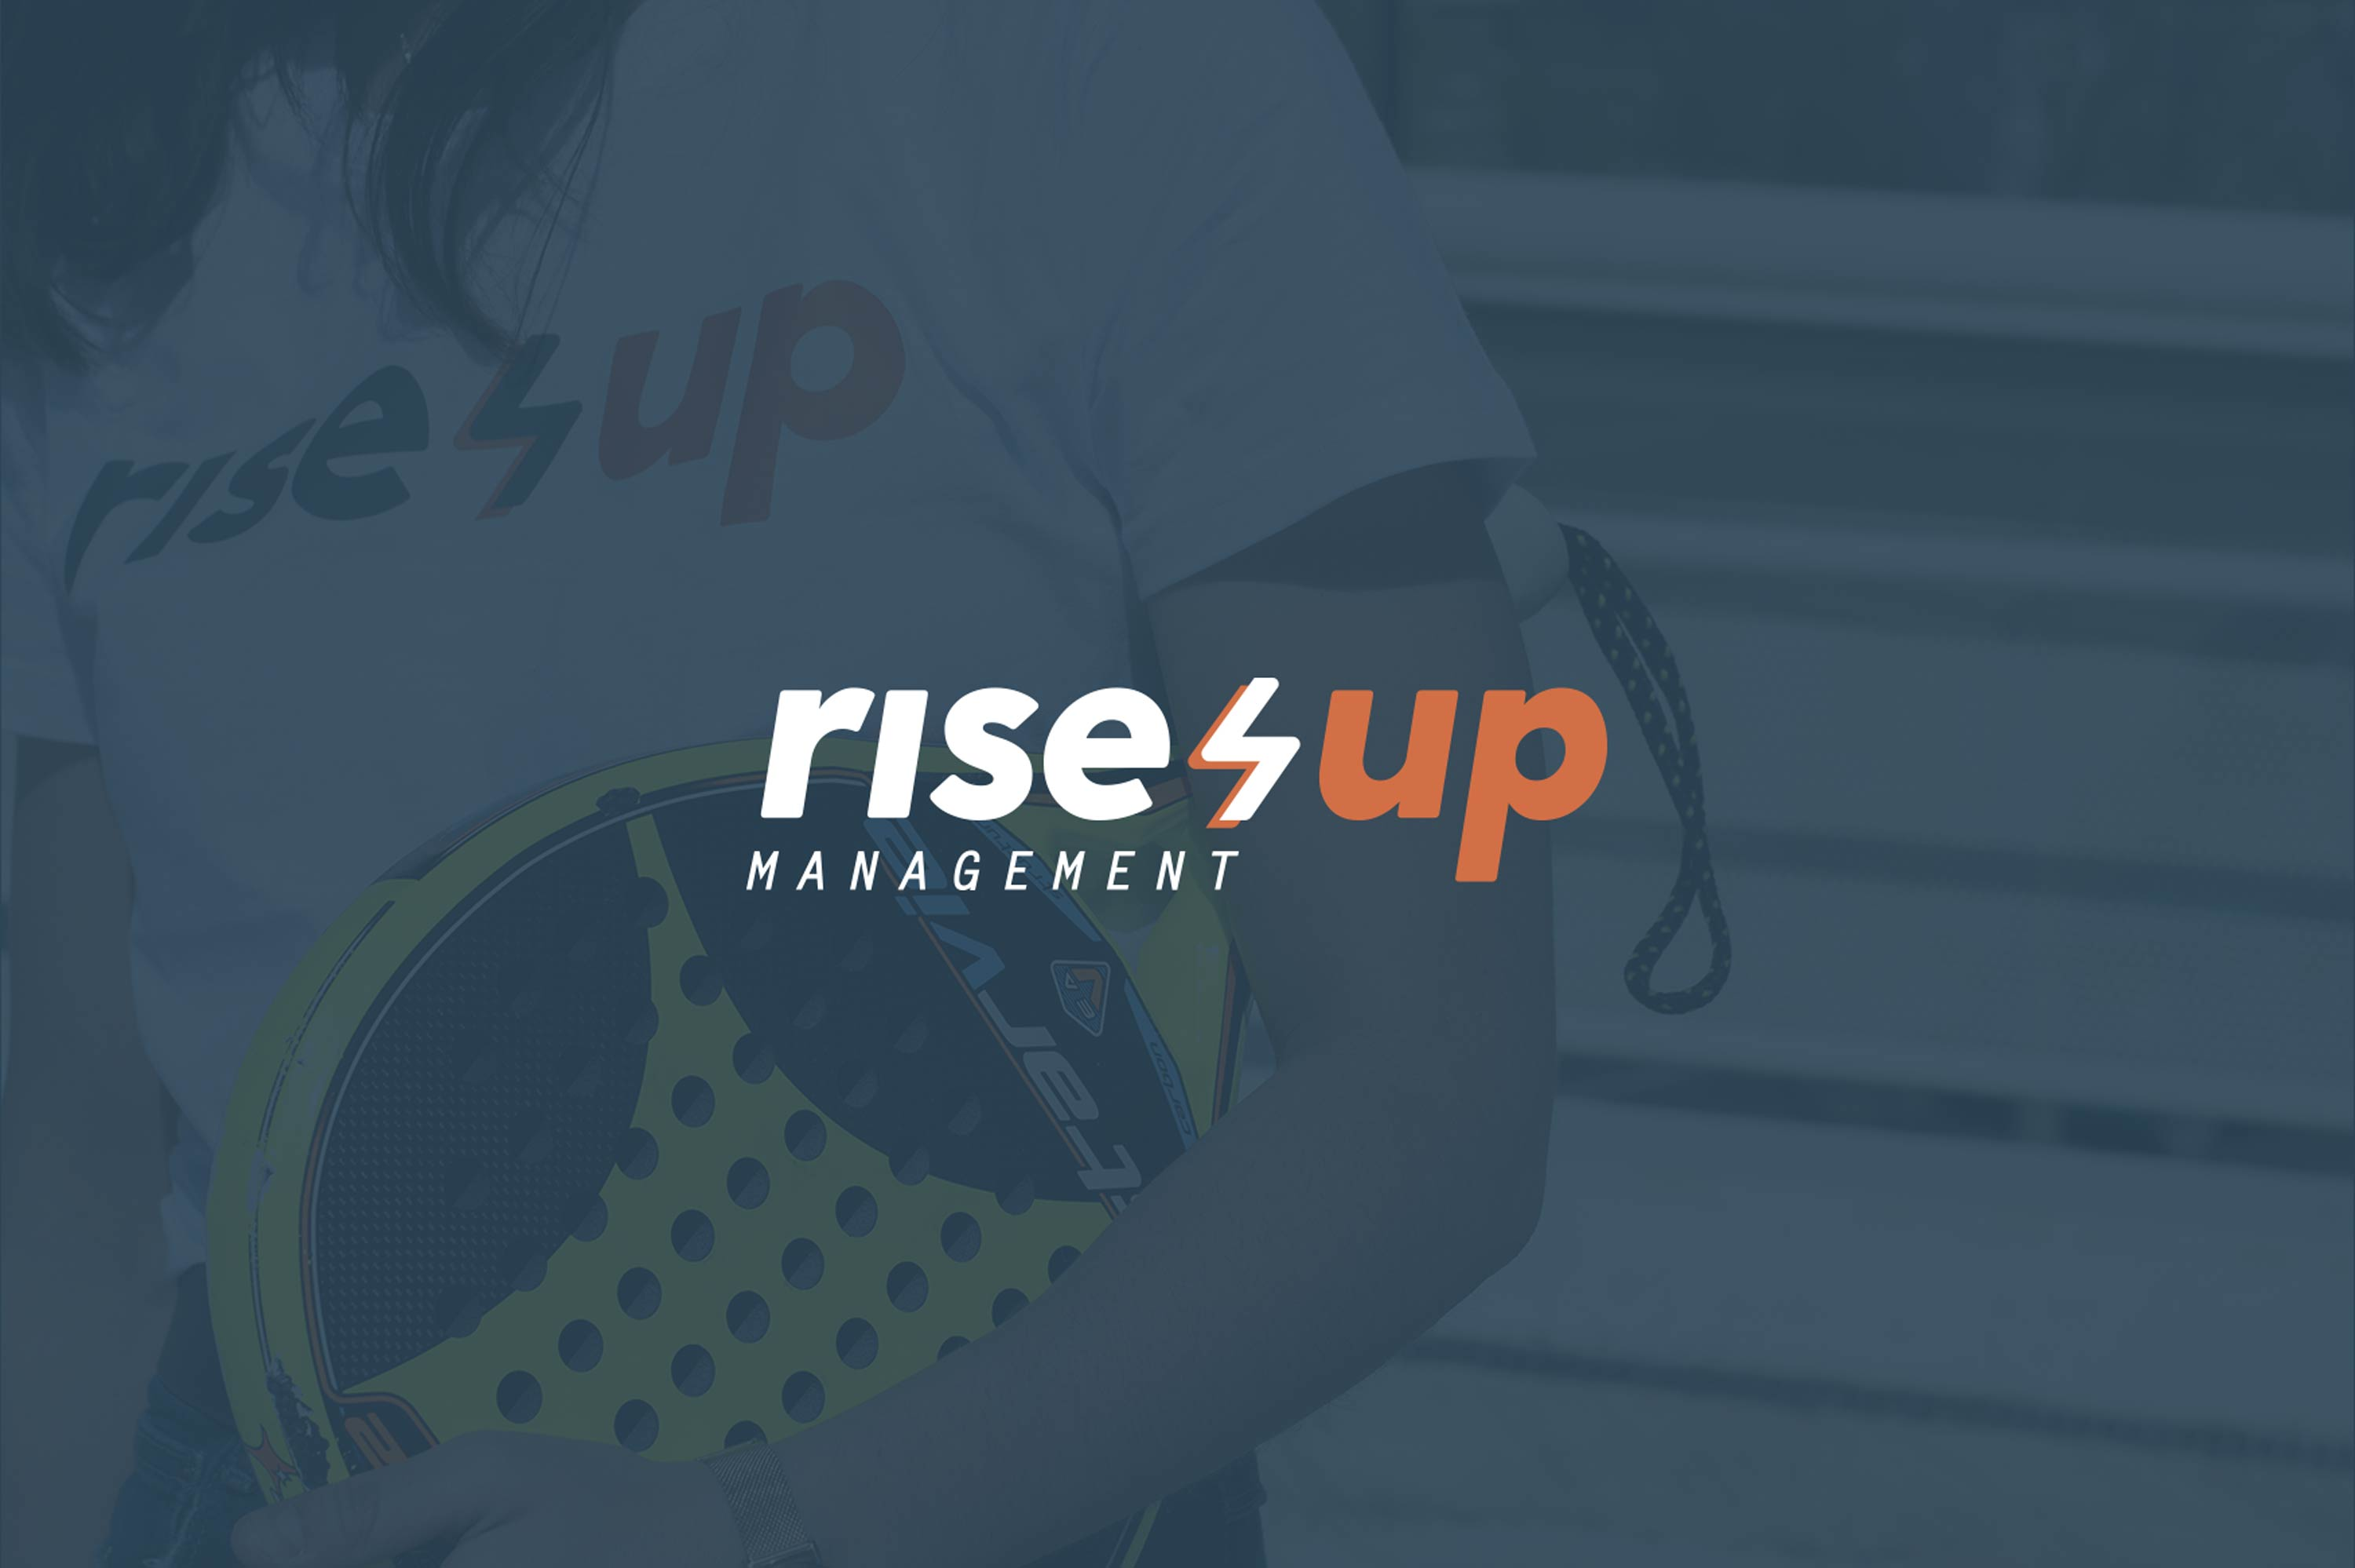 Identidad corporativa Rise Up Management